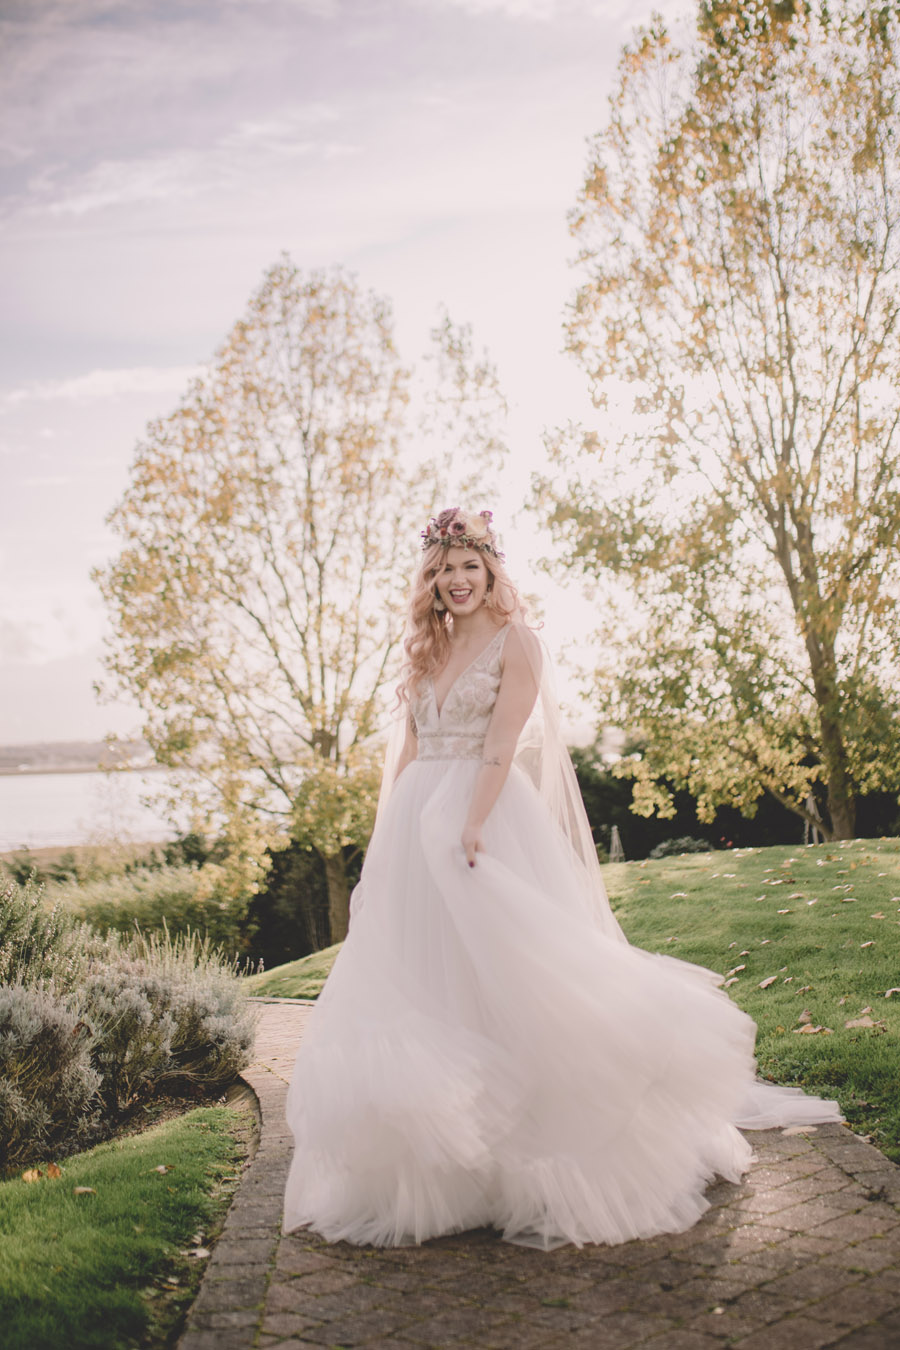 We Found Love! Natural, modern wedding inspiration from The Ferry House with images by Kerry Ann Duffy (16)